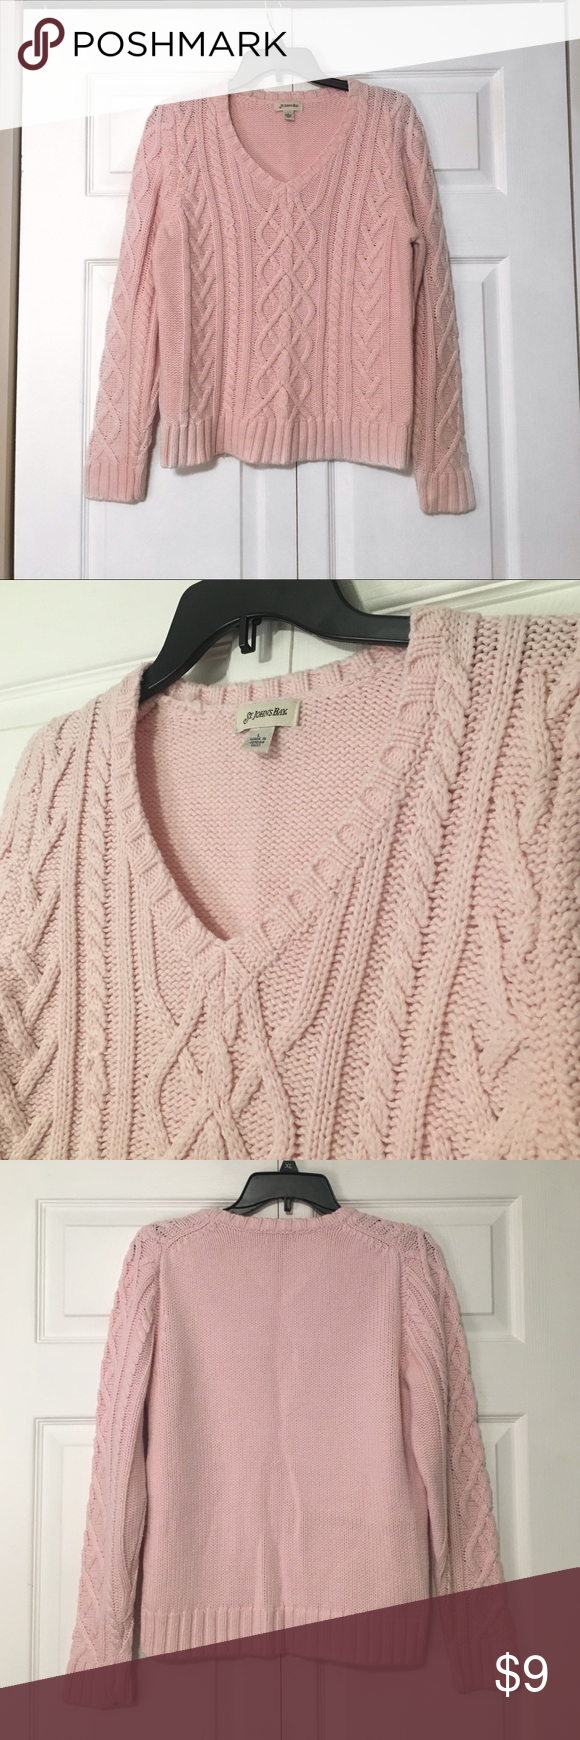 Cute Pink Sweater | Saints and Customer support